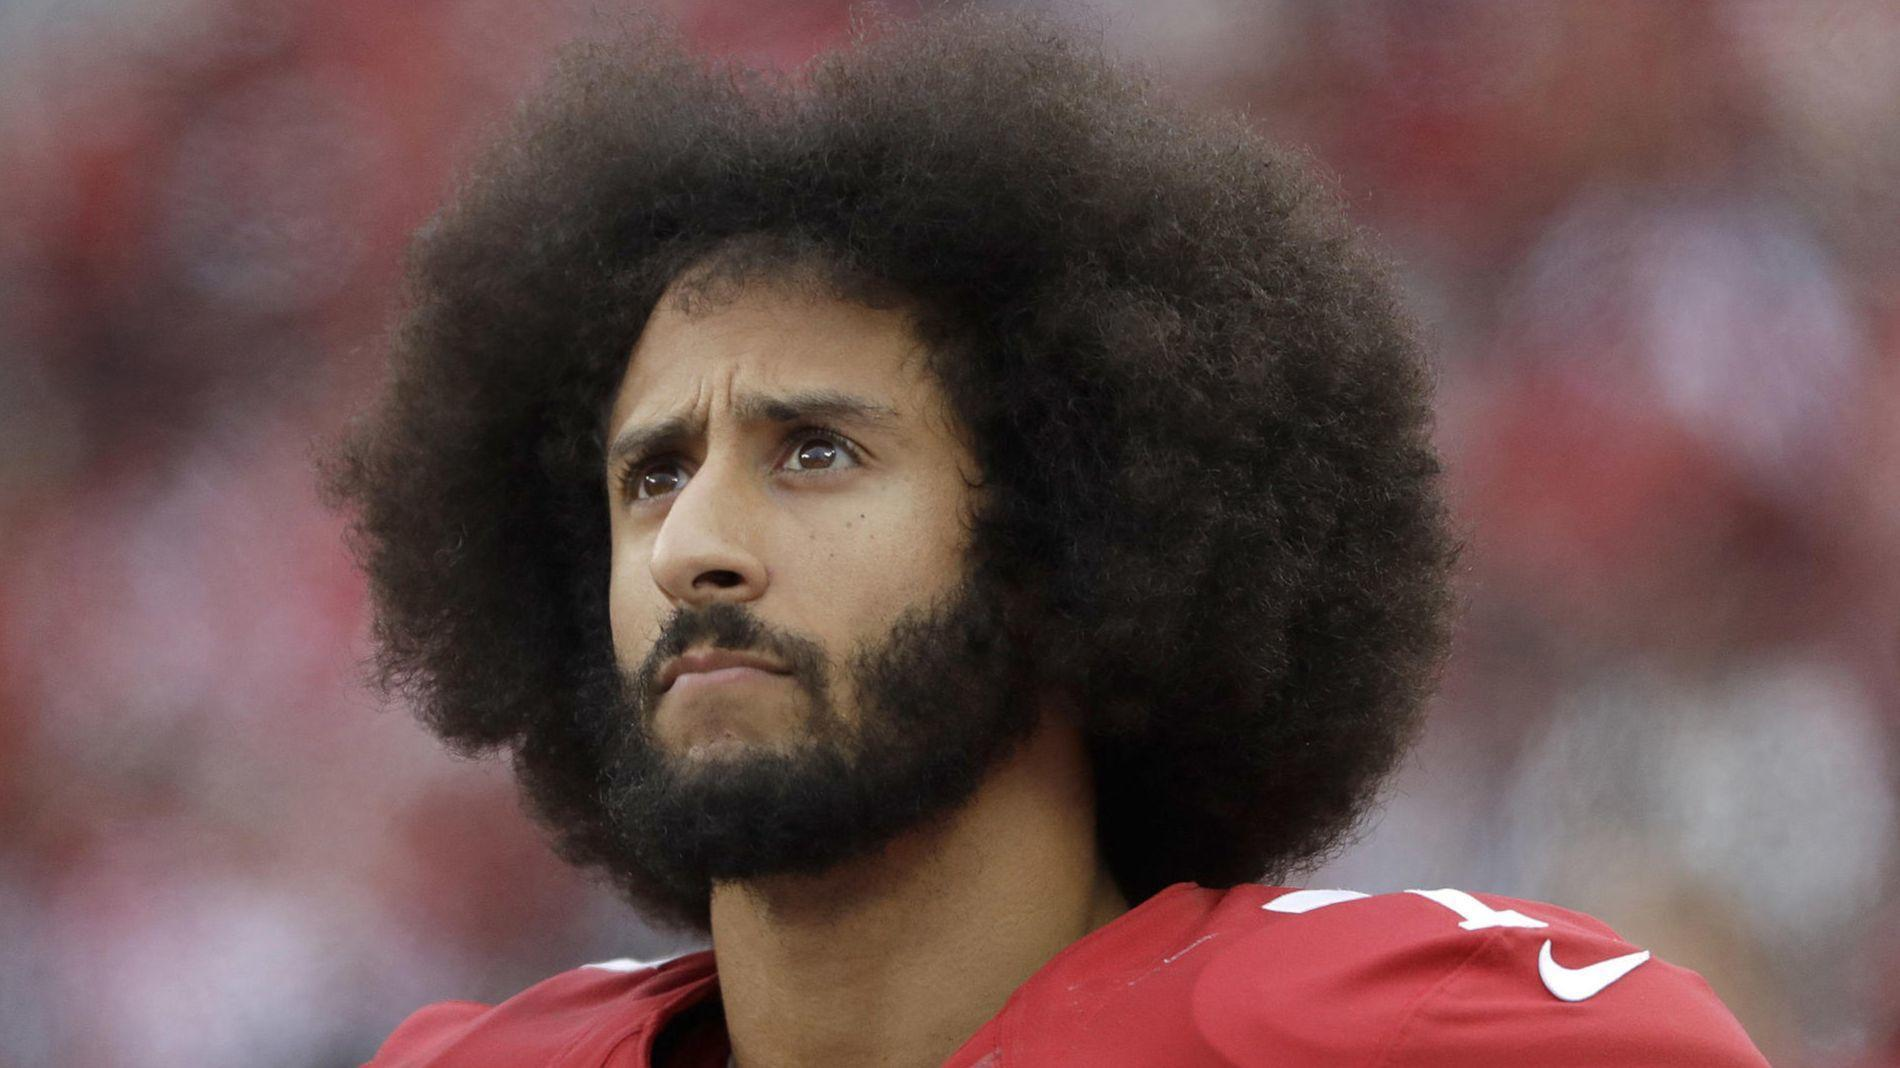 EA Sports apologizes for editing Colin Kaepernick's name out of a song on 'Madden NFL 19'